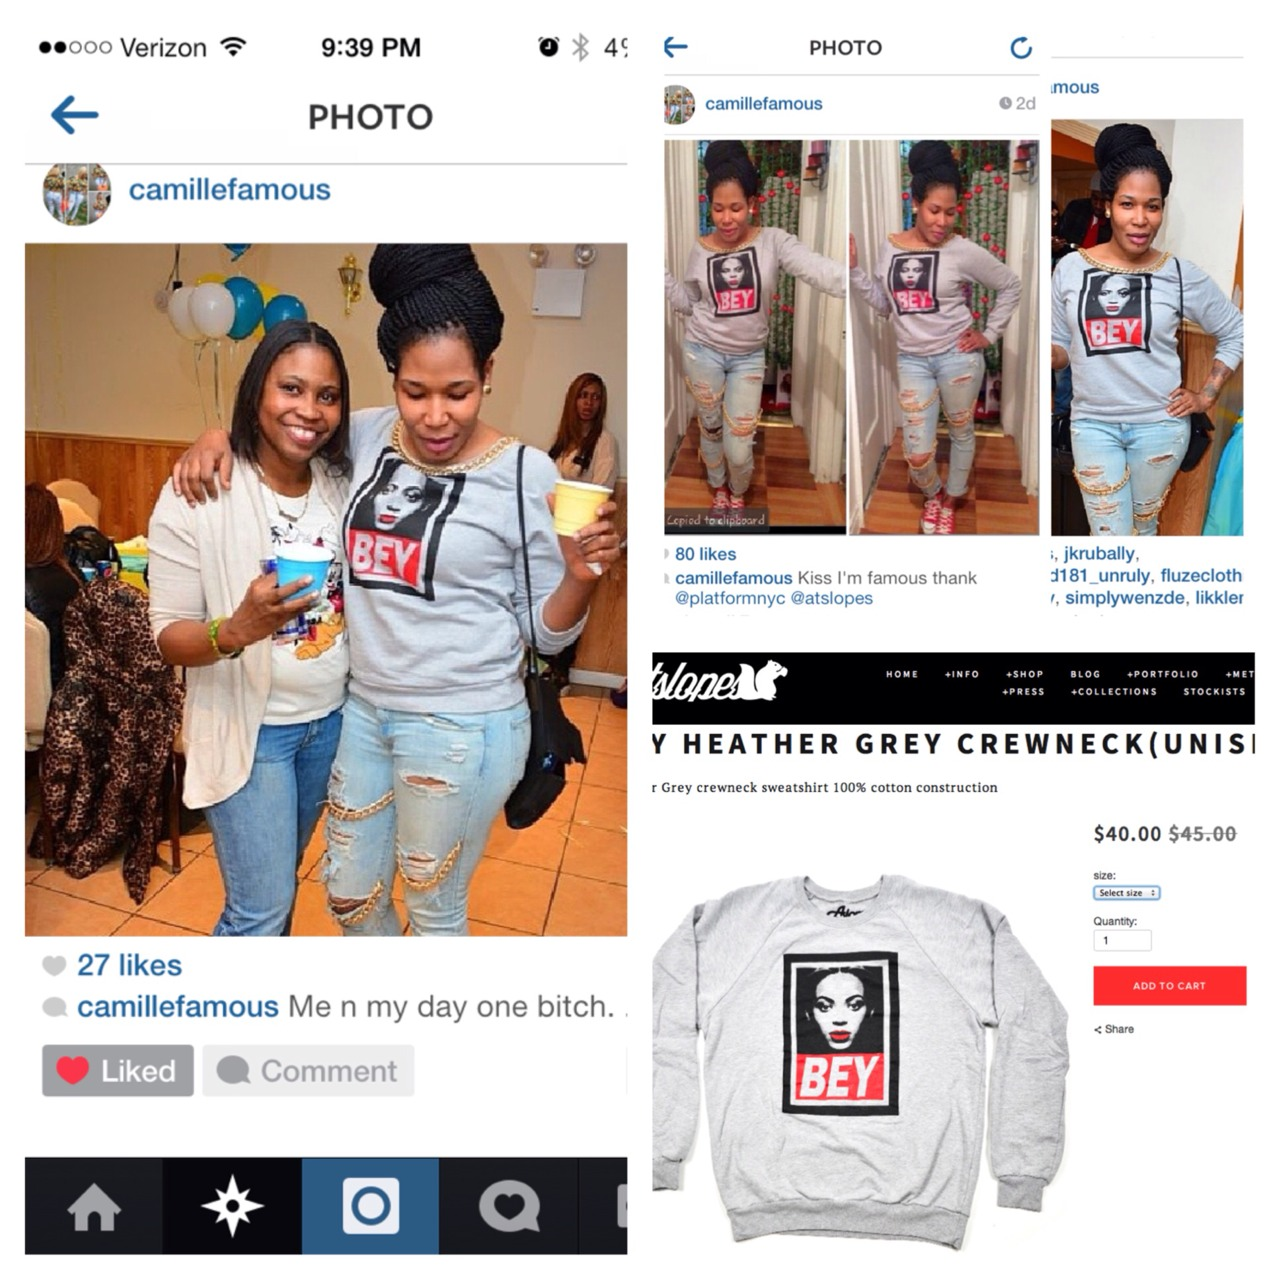 Bey sweater worn by Camille from Platformnyc check out there store in the Bronx and also in Connecticut. You will find Atslopes gear as well as other items they carry like hats, bags, shirts. So visit them if your in the area.